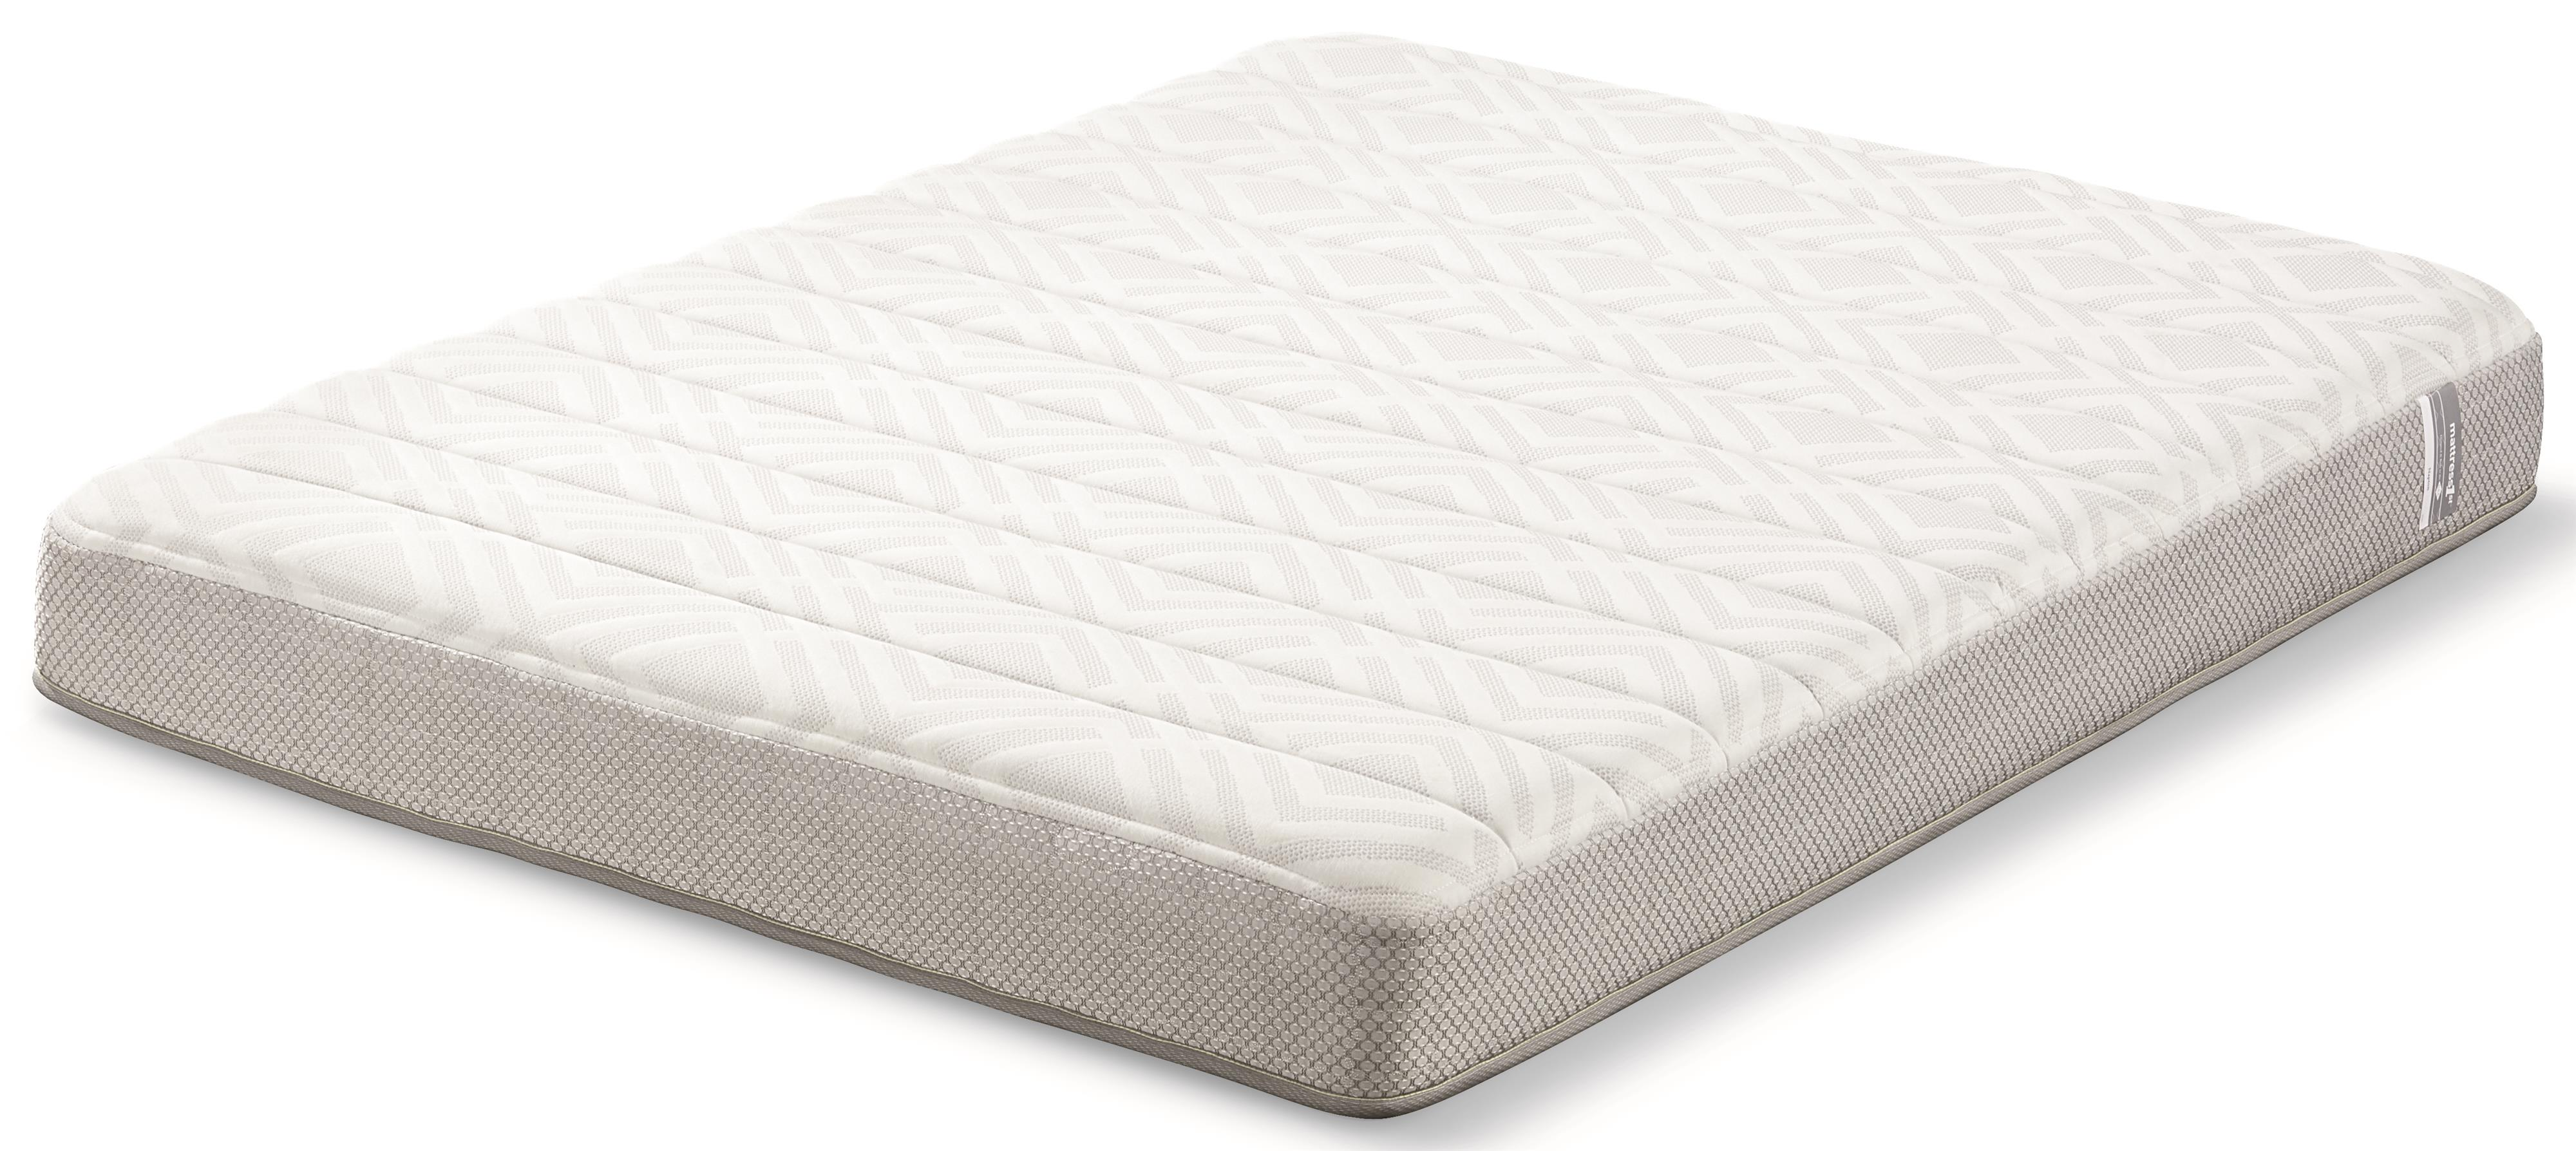 Mattress 1st Napton Full Firm Memory Foam Mattress - Item Number: 500955191-F